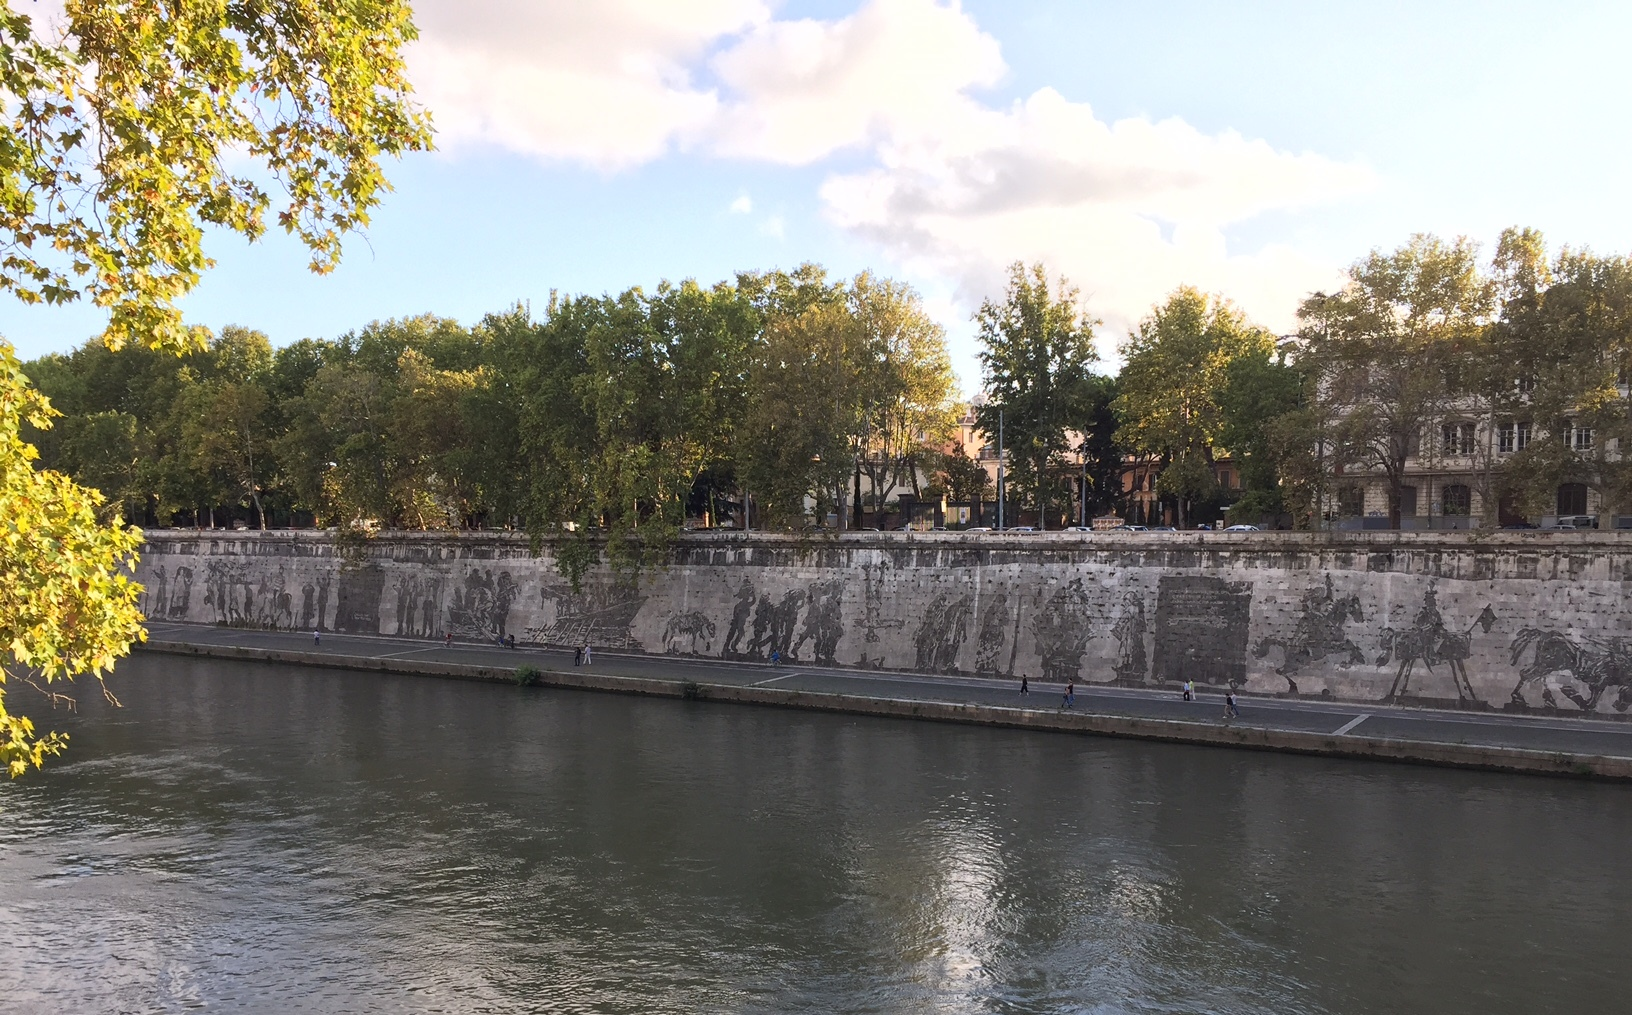 View of 'Triumps and Laments' from across the Tiber with ant-like figures in front of the frieze to show the colossal scale